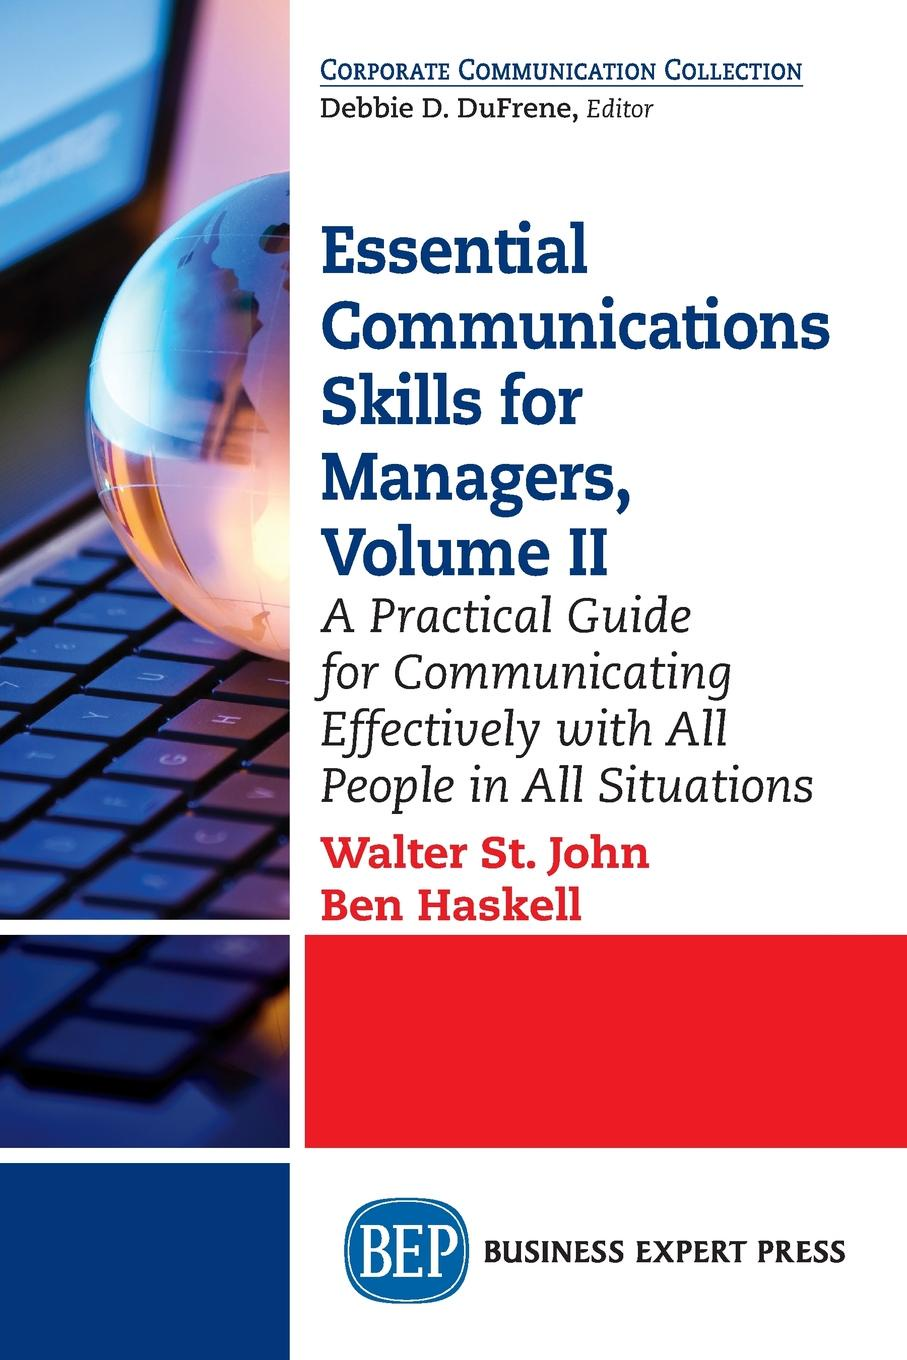 Walter St. John, Ben Haskell Essential Communications Skills for Managers, Volume II. A Practical Guide for Communicating Effectively with All People in All Situations